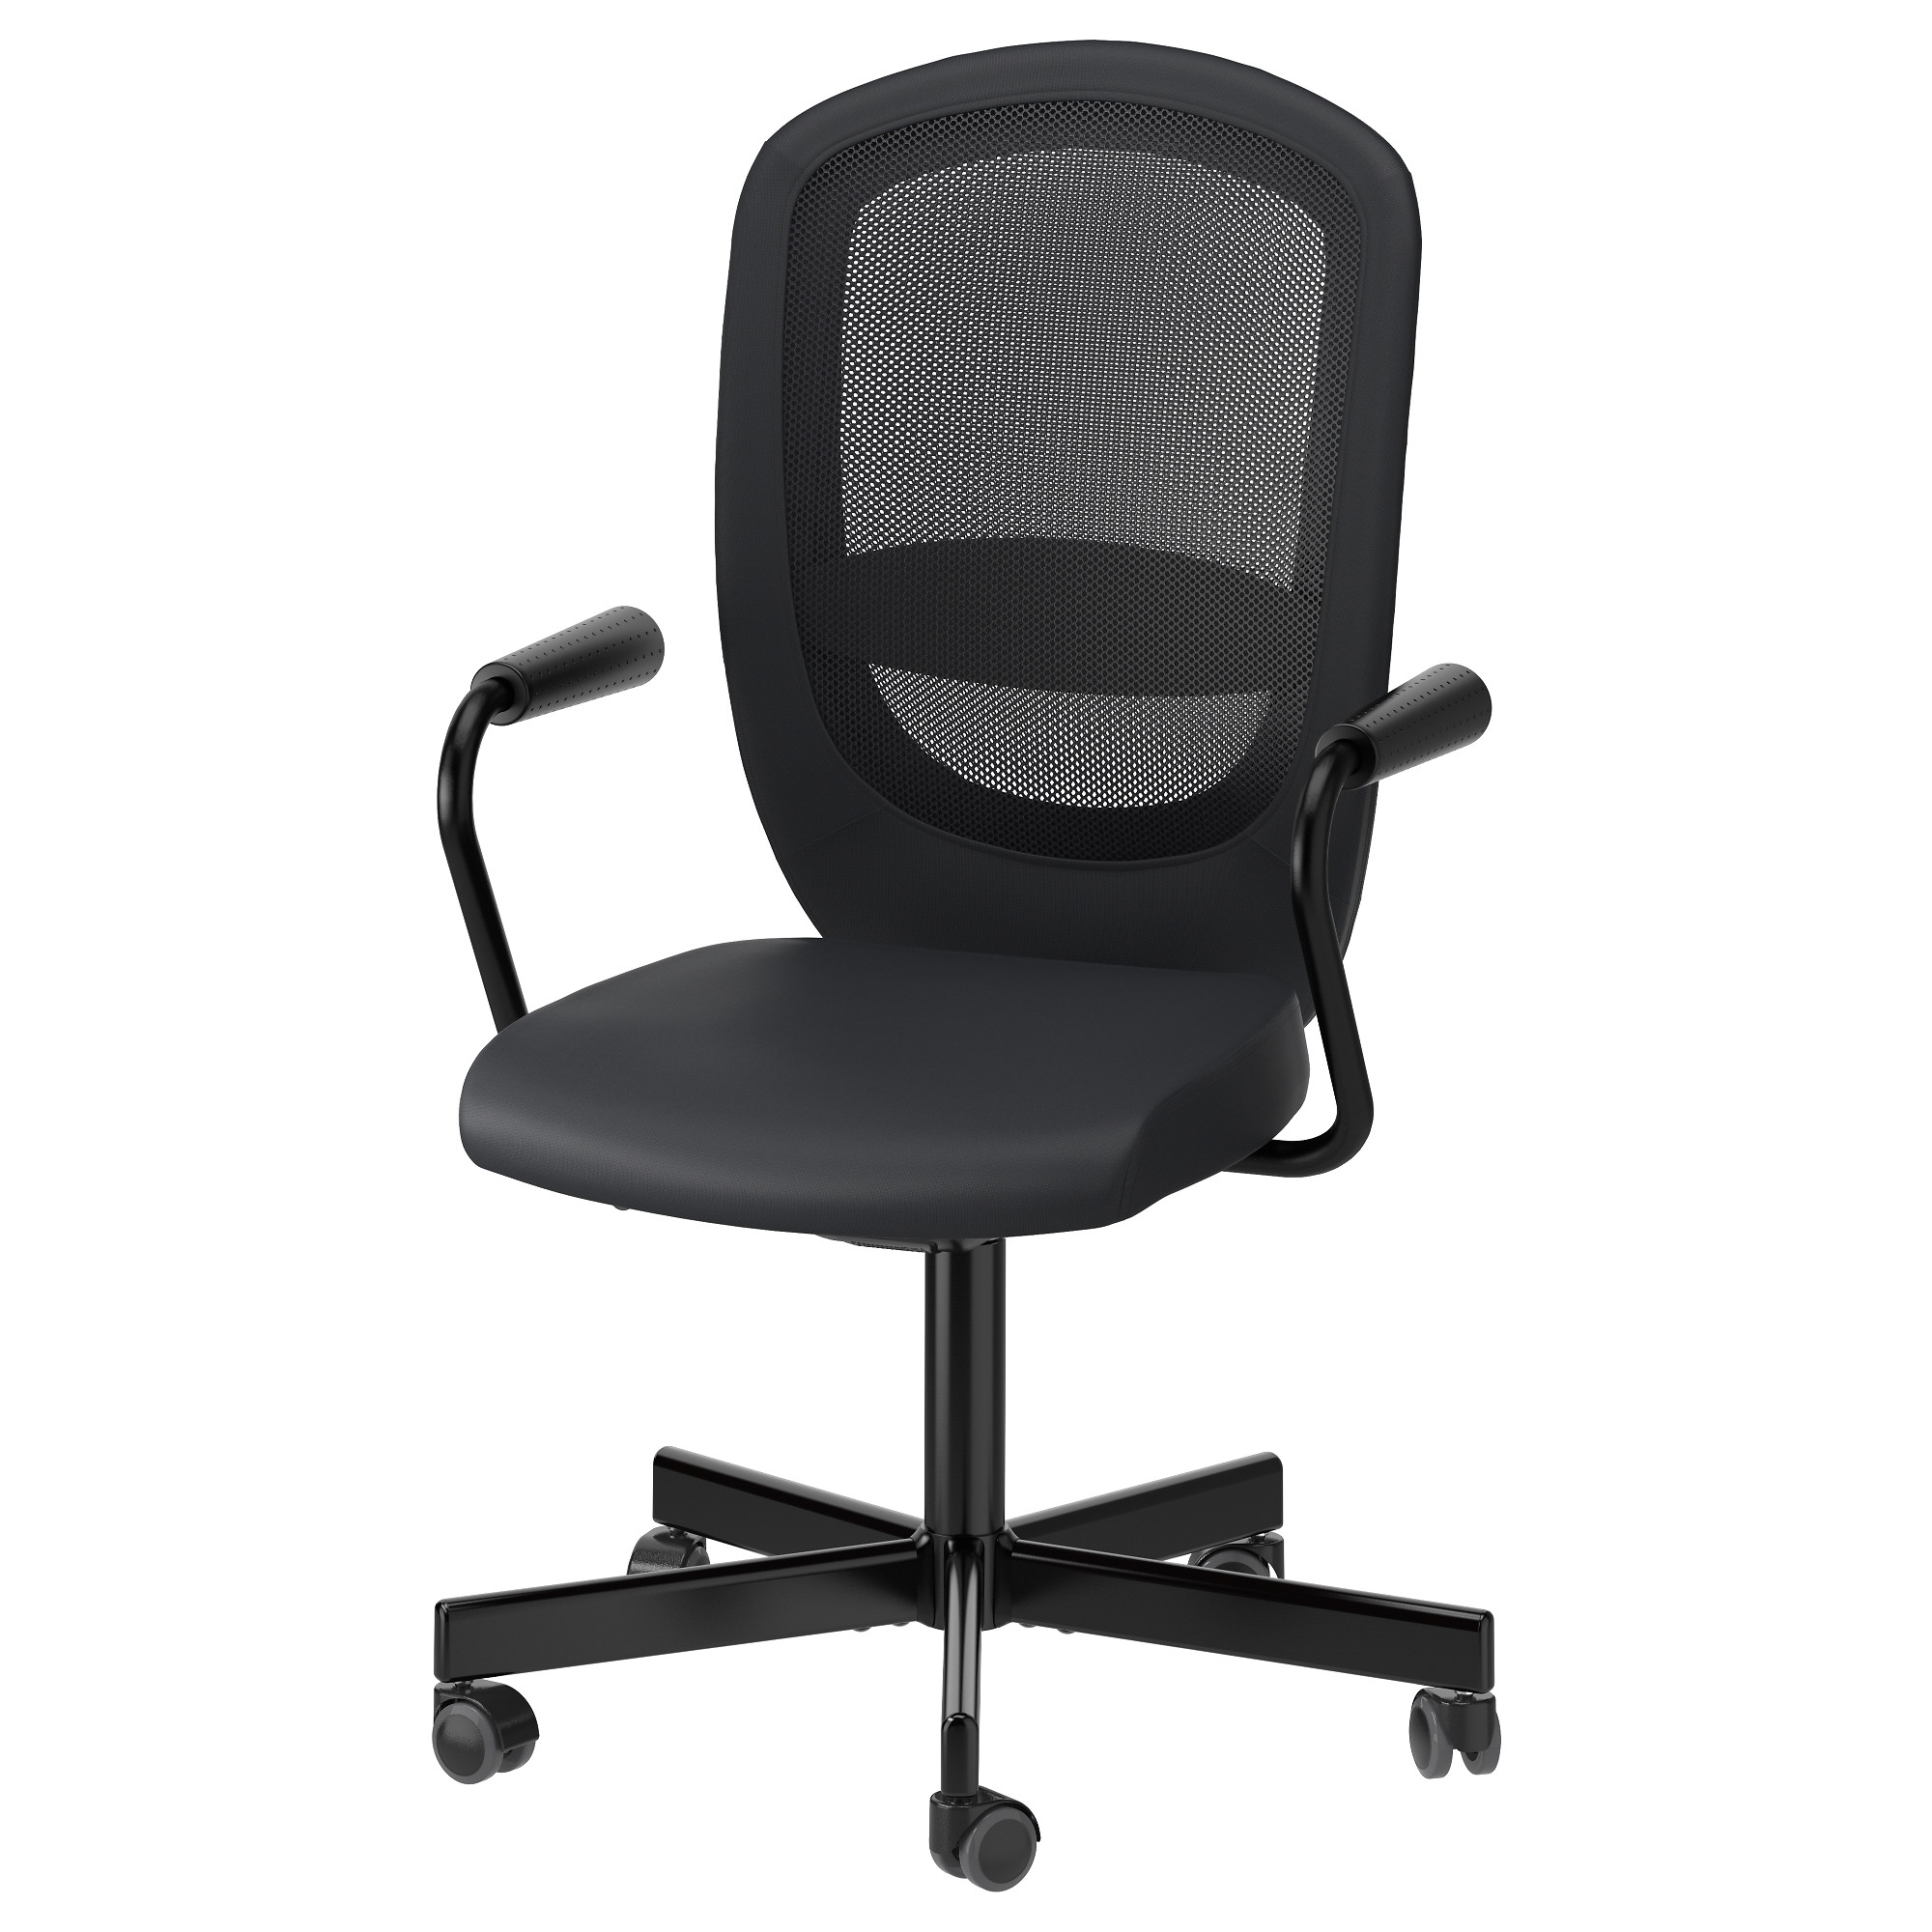 FLINTAN / NOMINELL Swivel Chair With Armrests, Black Tested For: 242 Lb 8 Oz